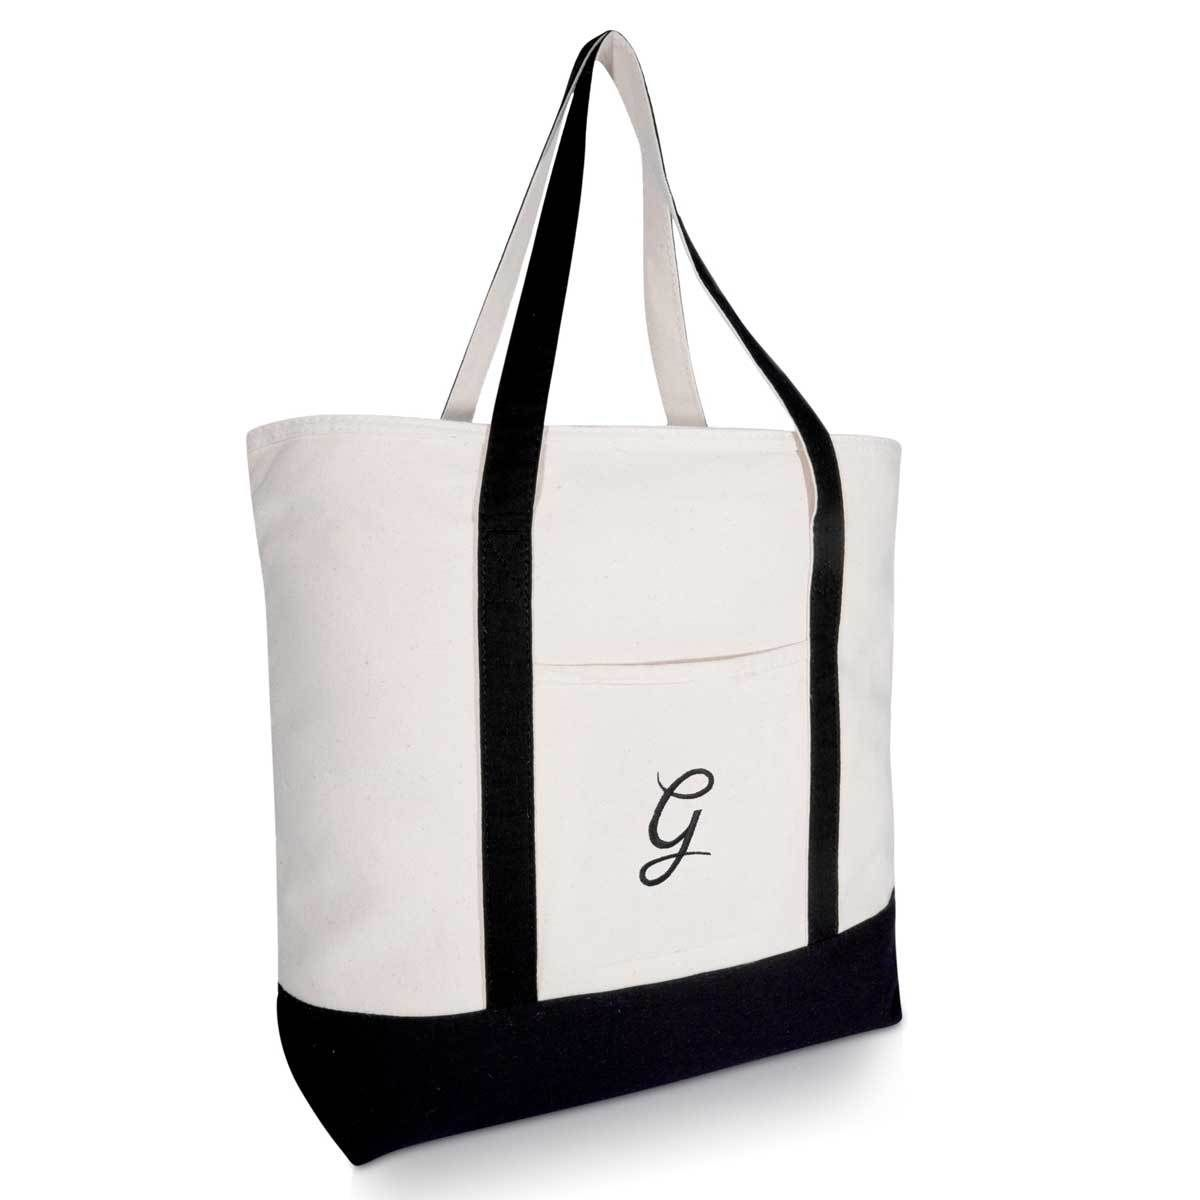 303dcad5c DALIX Personalized Tote Bag Monogram Black Initial Personalized Tote Bags, Black  Letter, Monogram Alphabet